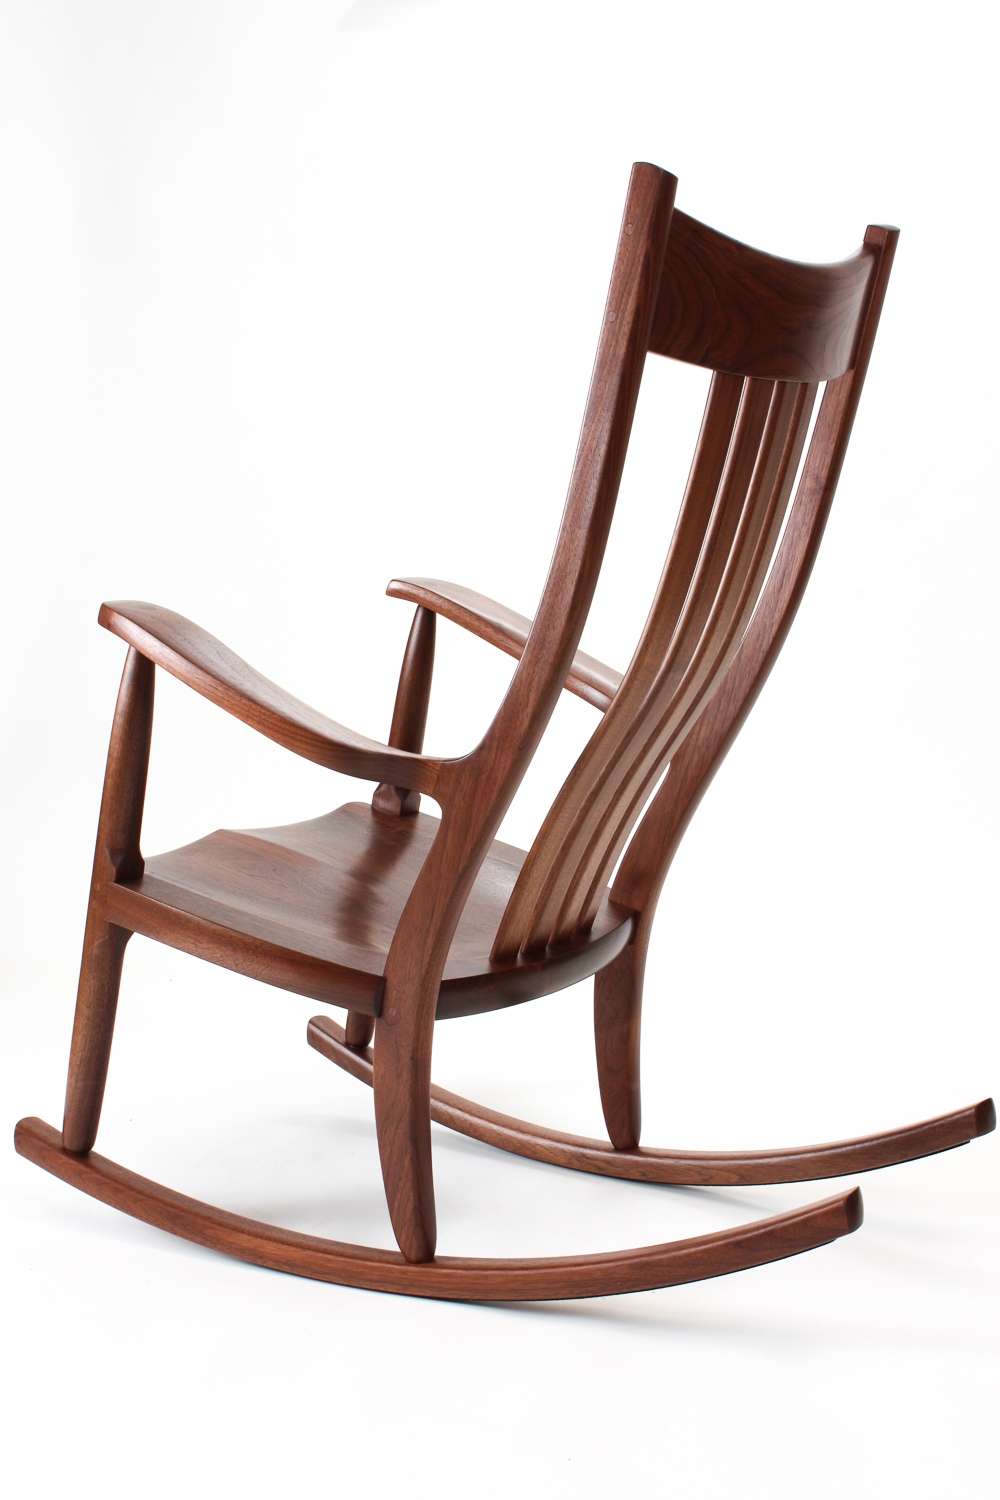 Inspiration about Walnut Rocking Chairs | Comfortable, Handmade, Heirloom Throughout Walnut Wood Rocking Chairs (#1 of 20)